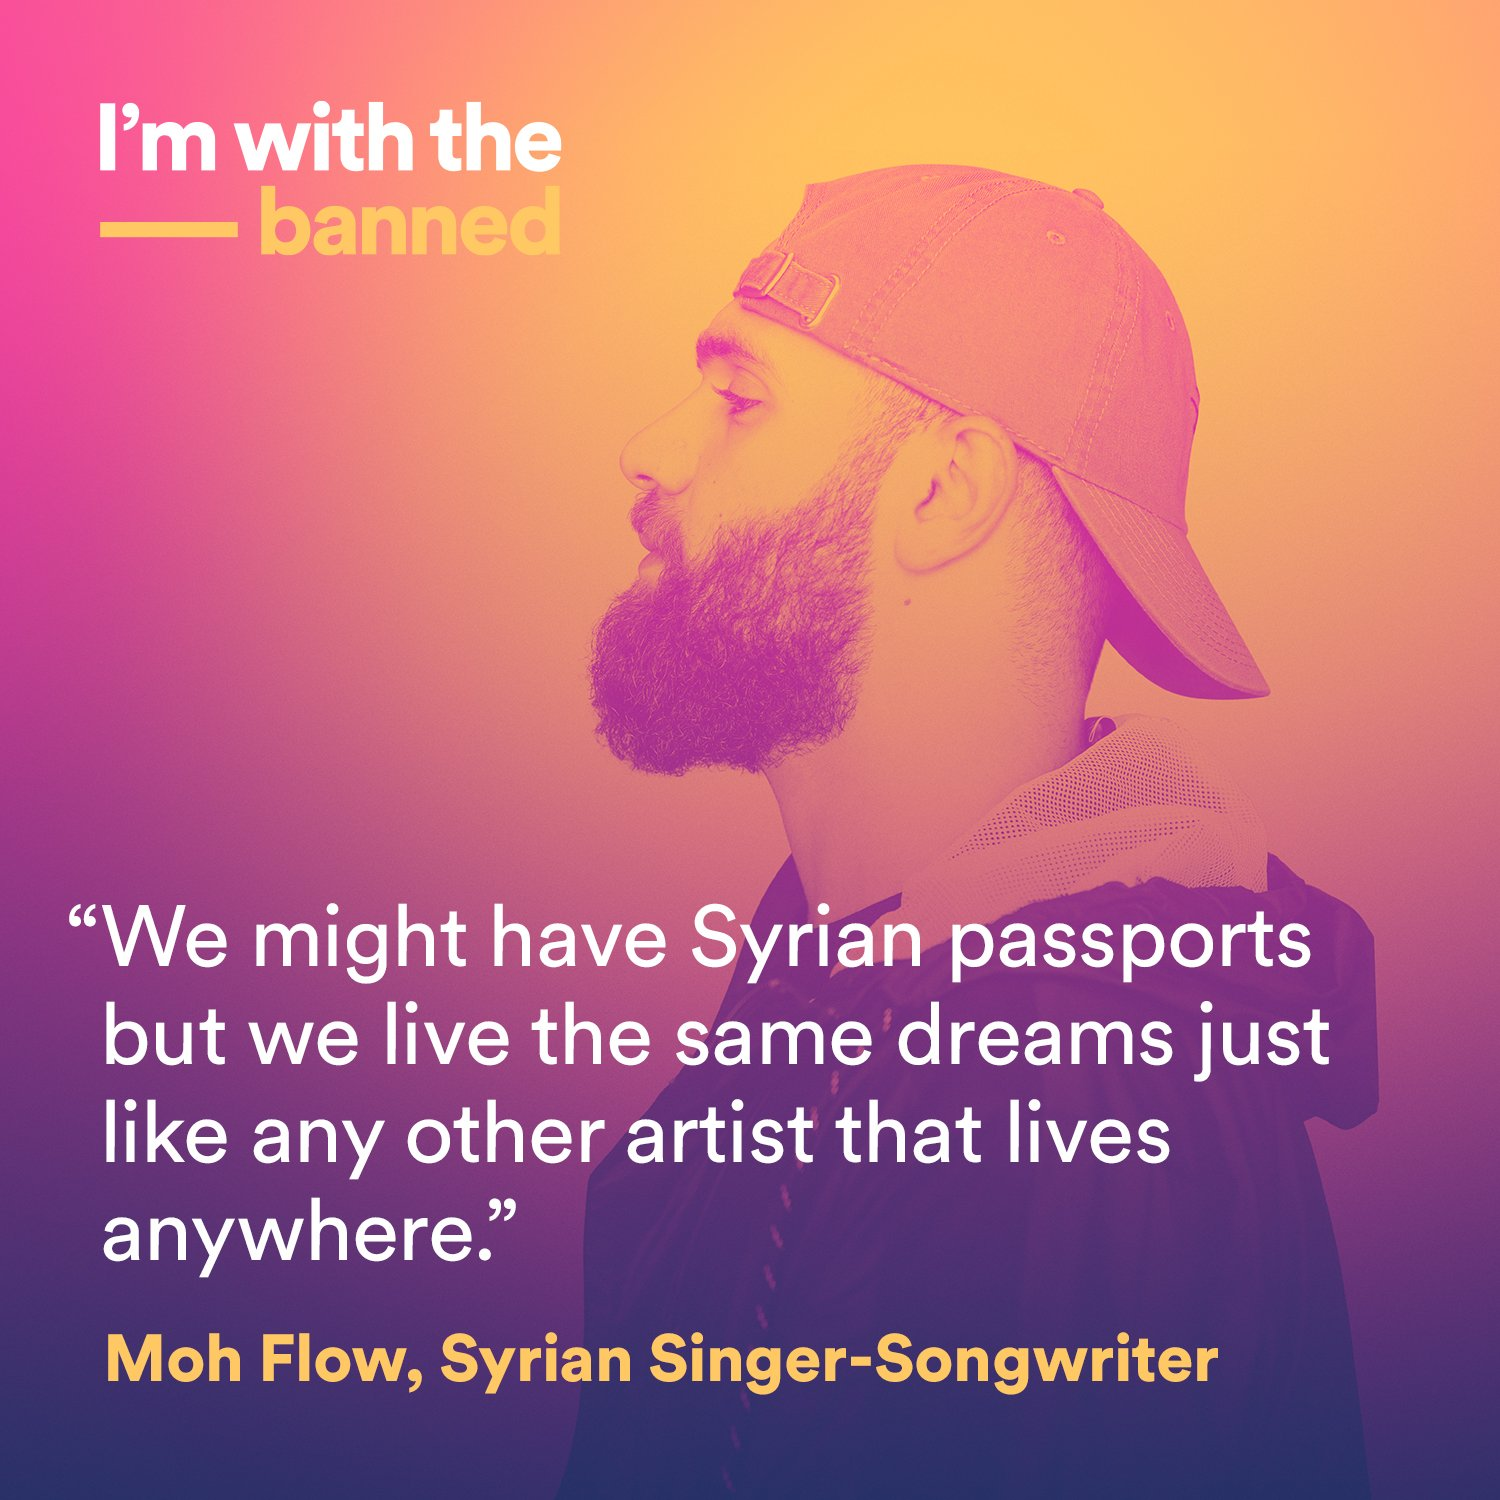 Meet @MohFlowMusic, a Syrian singer-songwriter. #ImWithTheBanned https://t.co/i9zE87MCZy https://t.co/UEDV8FzUEj